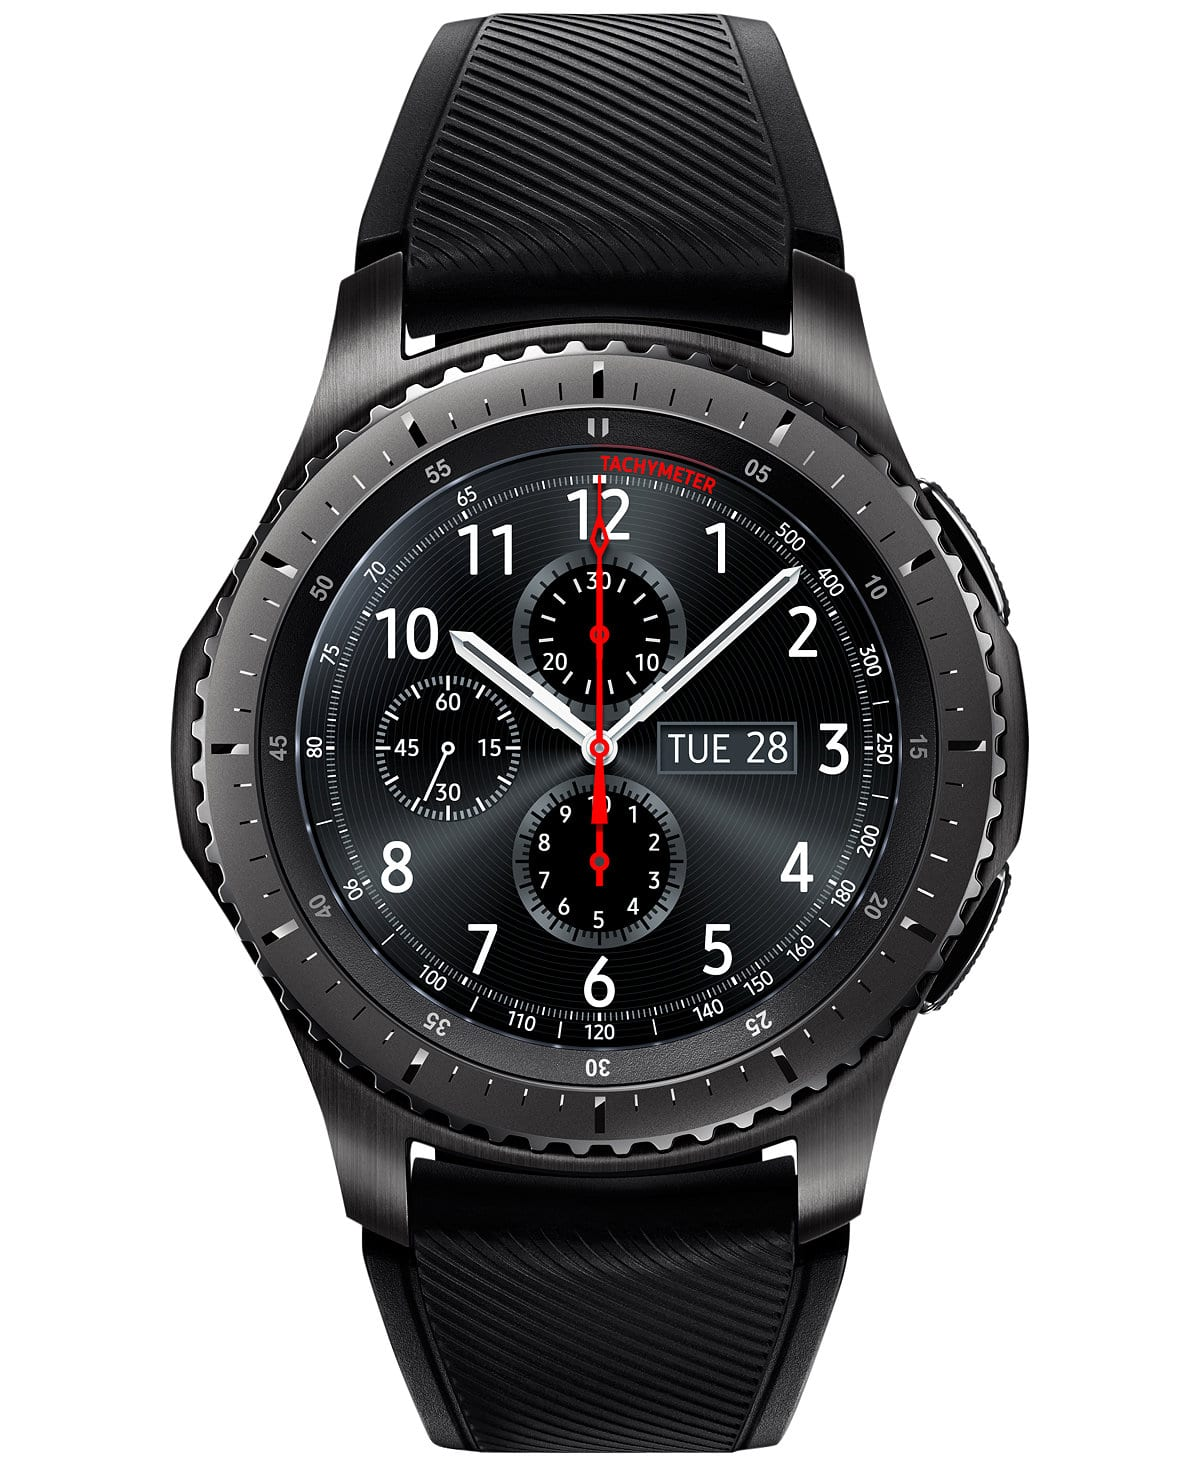 BACK: Samsung Gear S3  Frontier or Classic 46mm Smart Watch - $254.99 + tax (NEW ACCOUNTS ONLY)